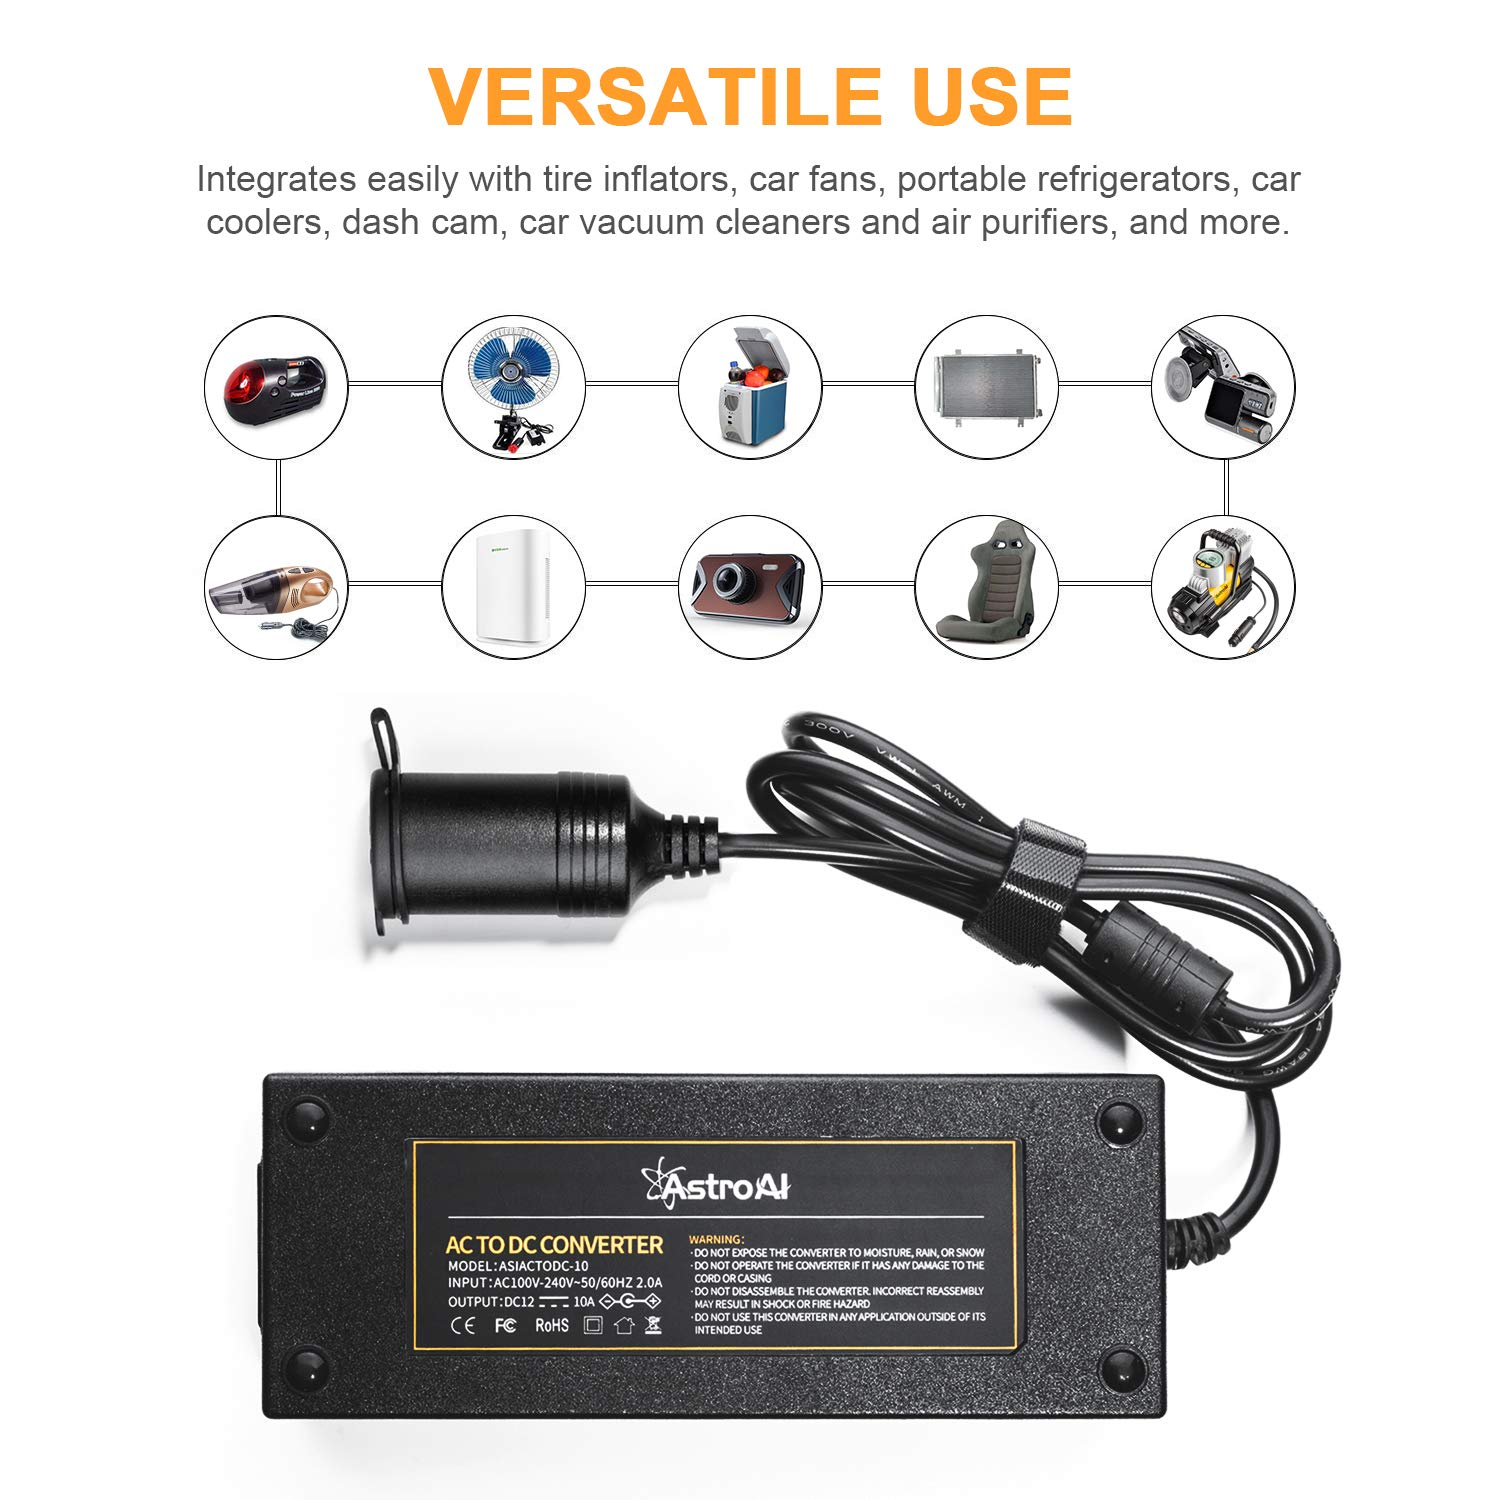 AstroAI AC to DC Converter, 10A 120W 110-220V to 12V Car Cigarette Lighter Socket AC DC Power Supply Adapter for Air Compressor Tire Inflator and Other 12V Devices Under 120W, Black by AstroAI (Image #4)